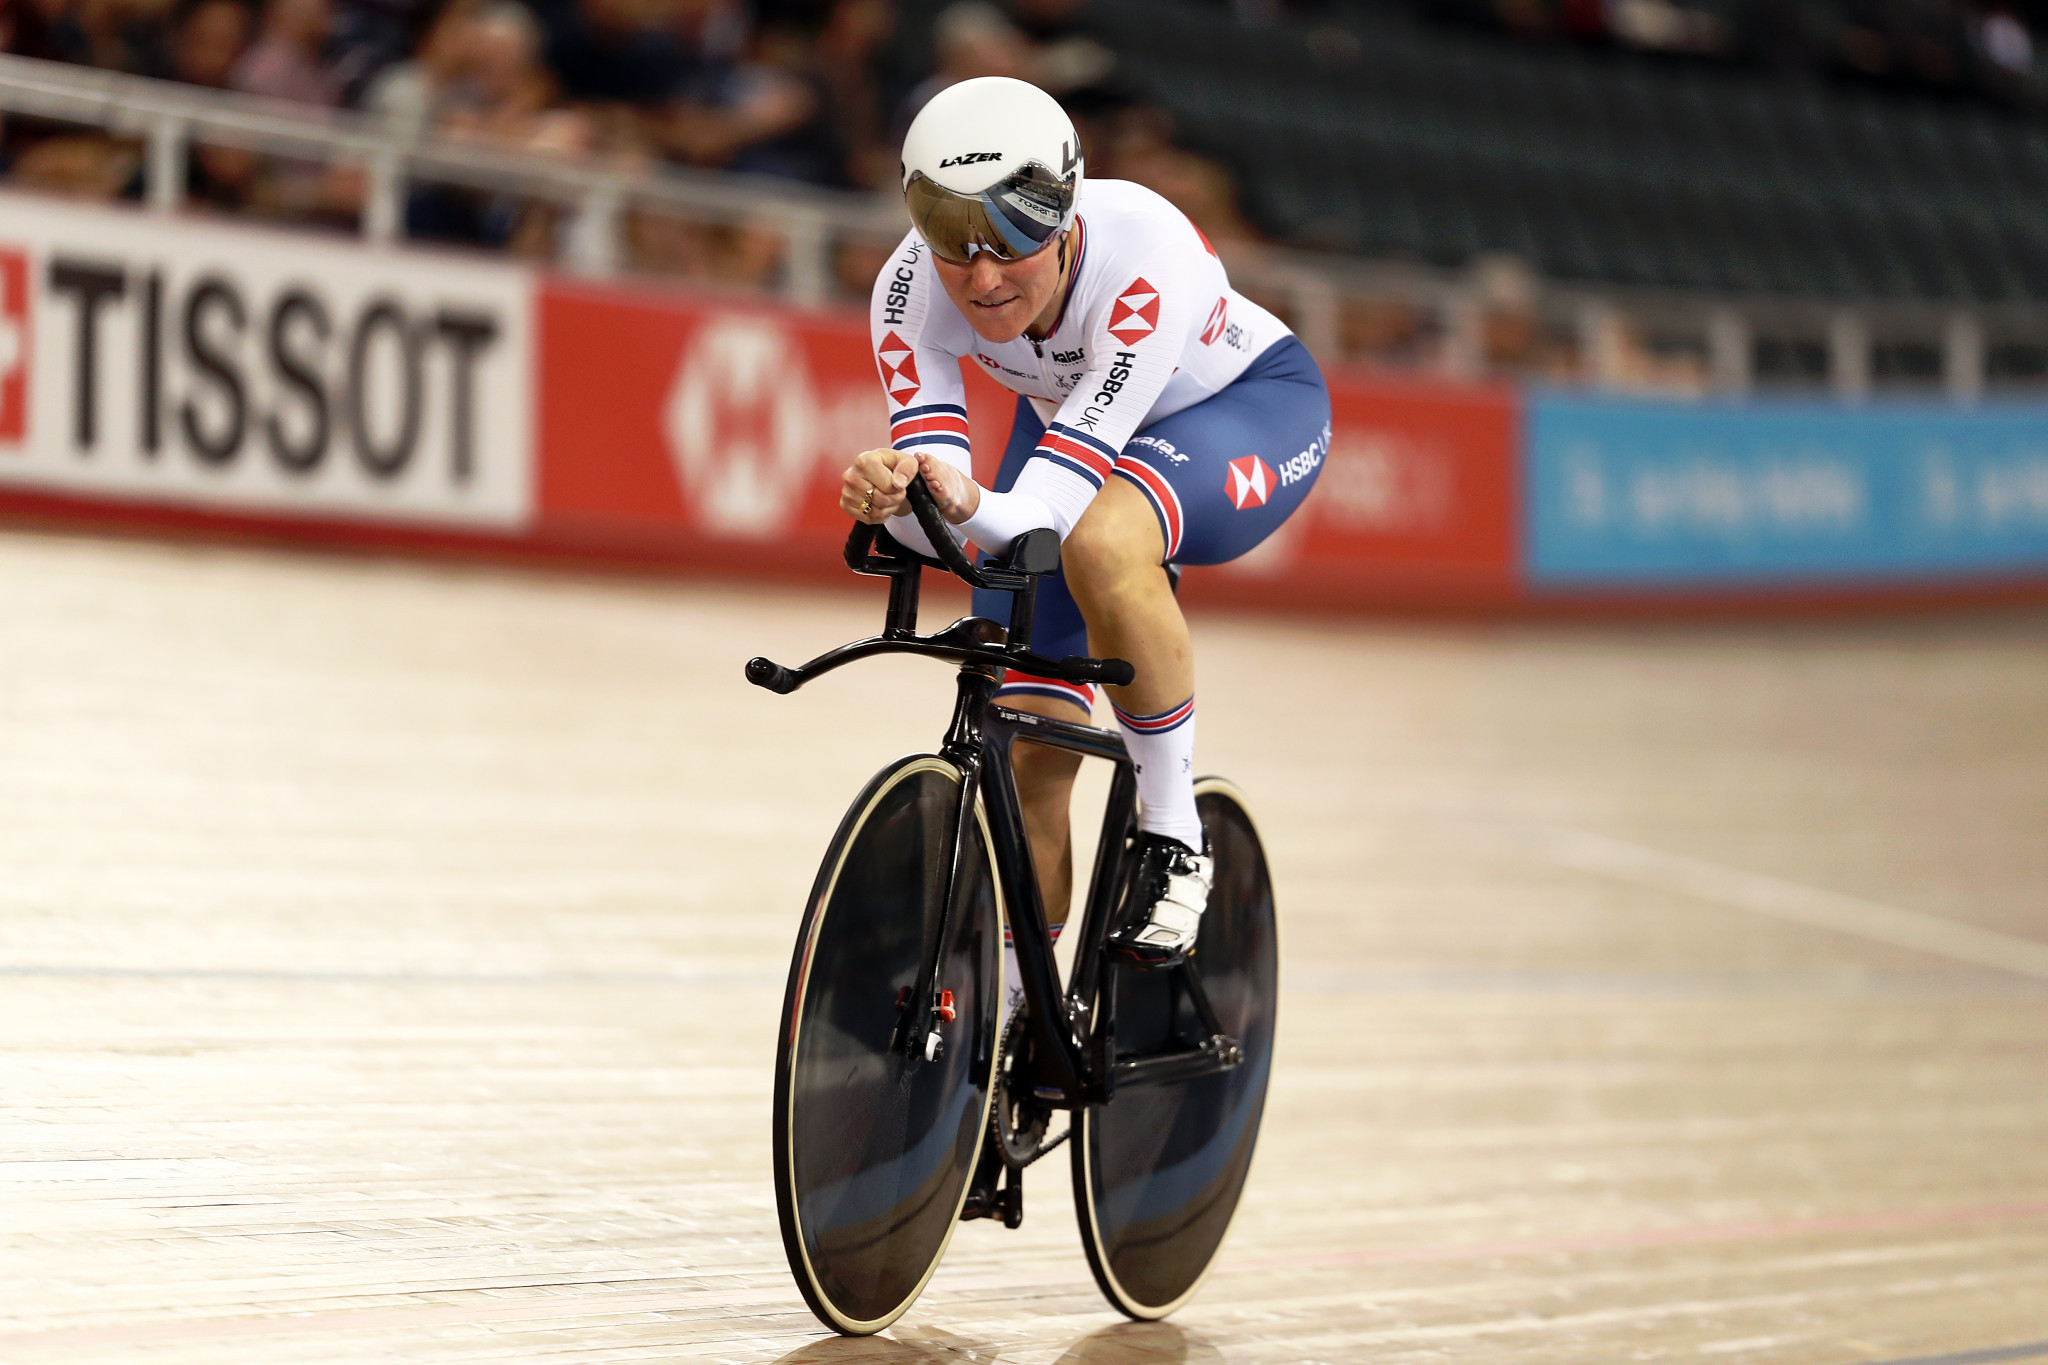 Storey eyes all-time British Paralympic record as Klaasen looks to seize golden chance